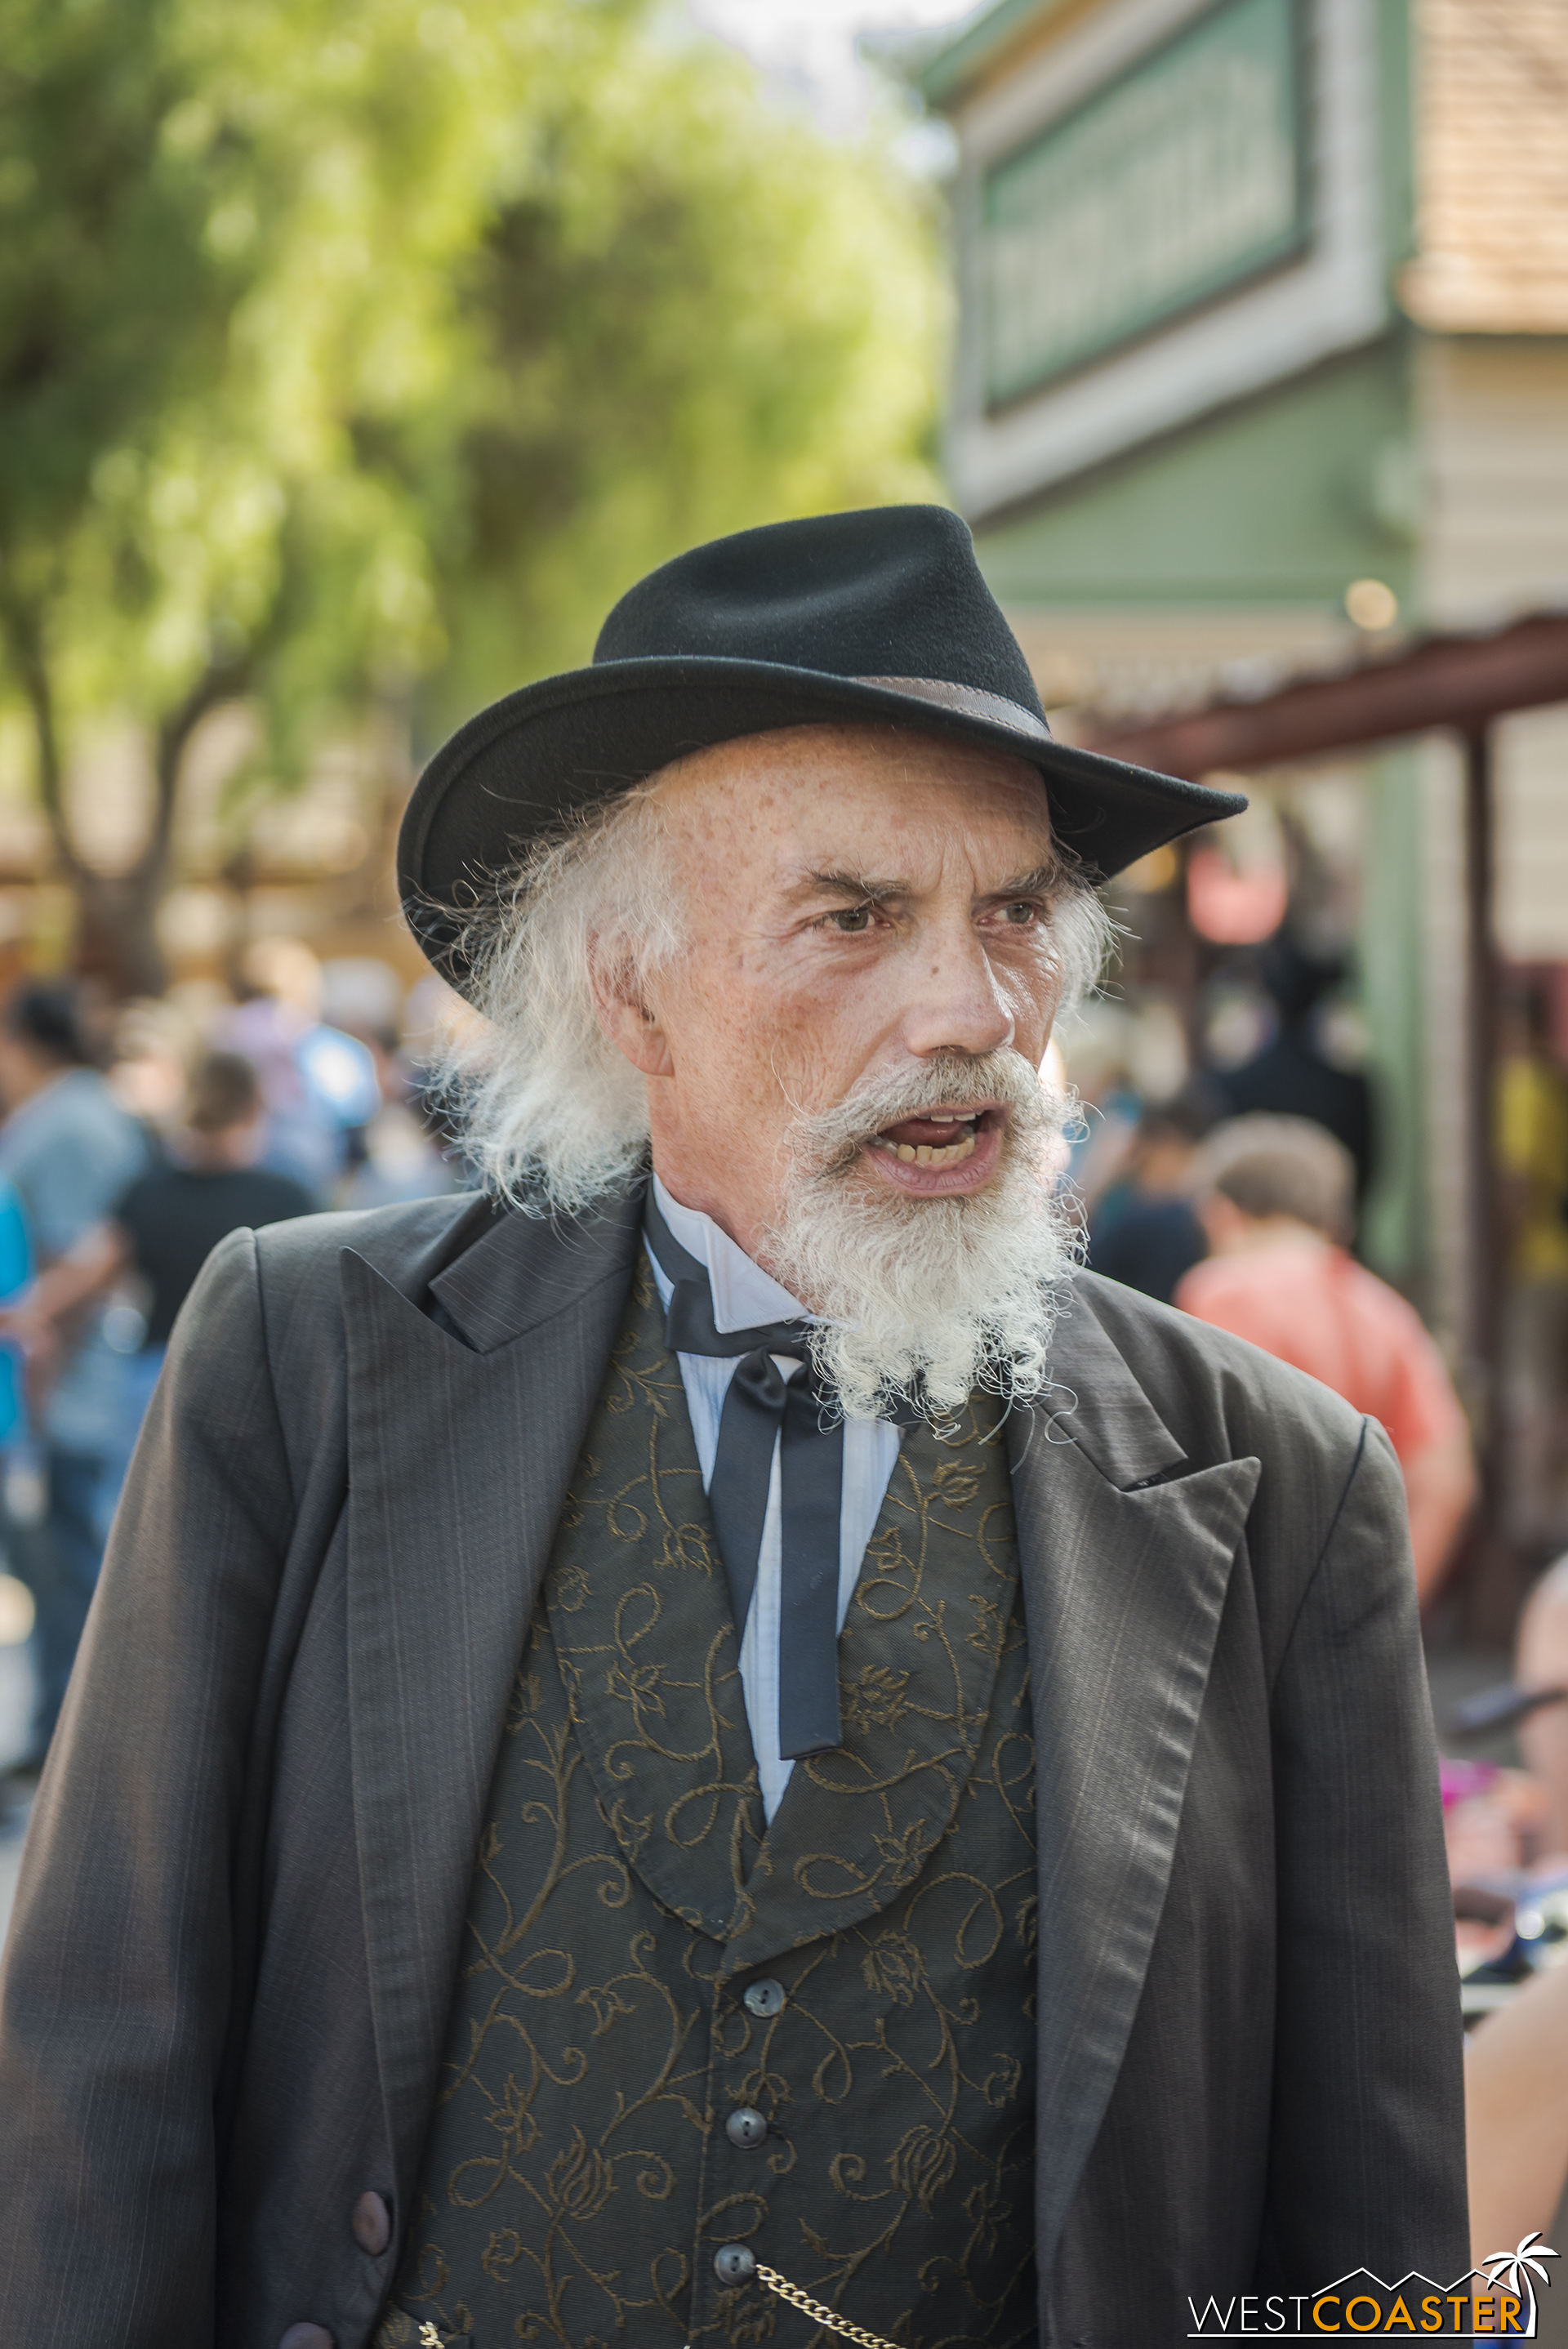 Judge Roy Bean keeps order in the town.  Or tries to.